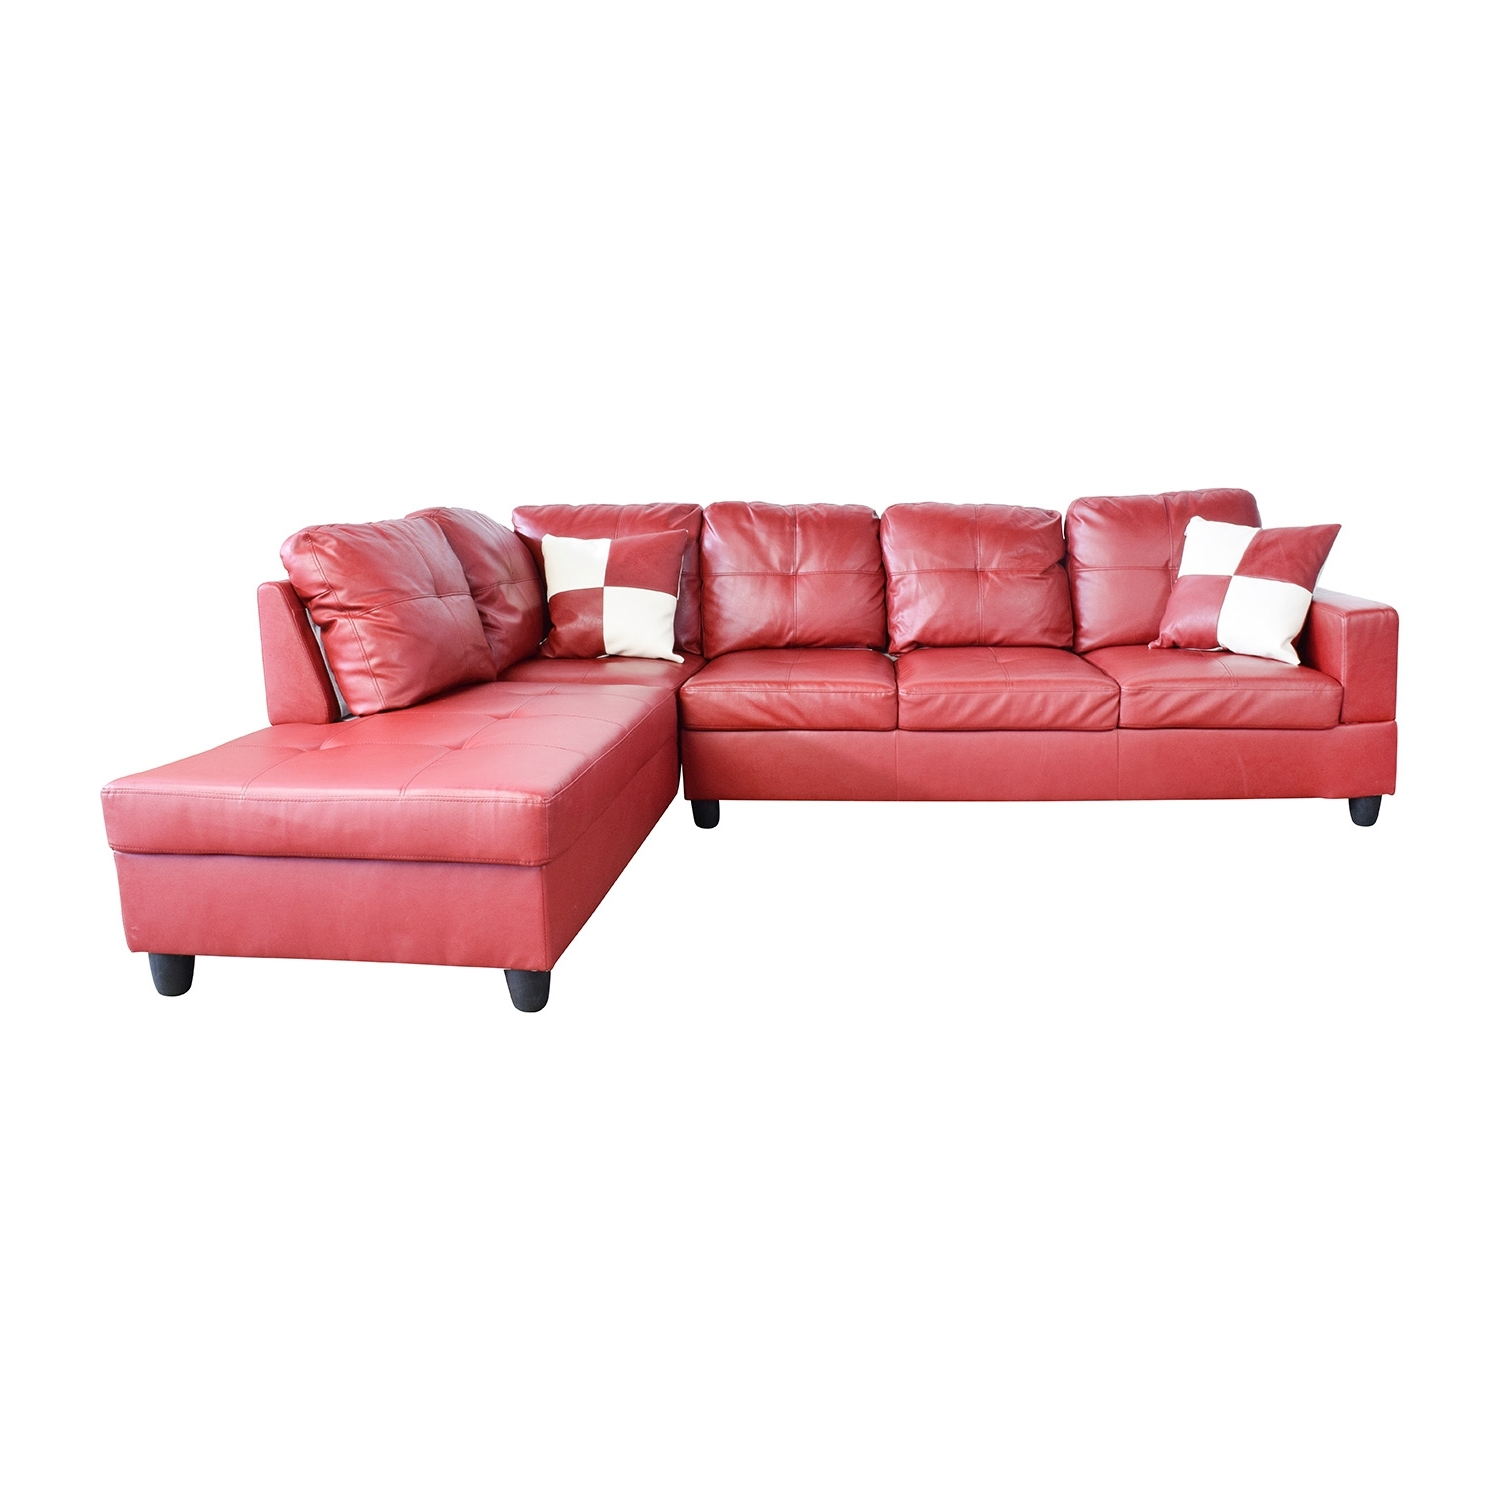 [%76% Off – Beverly Furniture Beverly Furniture Red Faux Leather With Regard To Most Recent Red Faux Leather Sectionals|Red Faux Leather Sectionals With Preferred 76% Off – Beverly Furniture Beverly Furniture Red Faux Leather|Current Red Faux Leather Sectionals Within 76% Off – Beverly Furniture Beverly Furniture Red Faux Leather|Trendy 76% Off – Beverly Furniture Beverly Furniture Red Faux Leather Intended For Red Faux Leather Sectionals%] (View 1 of 15)